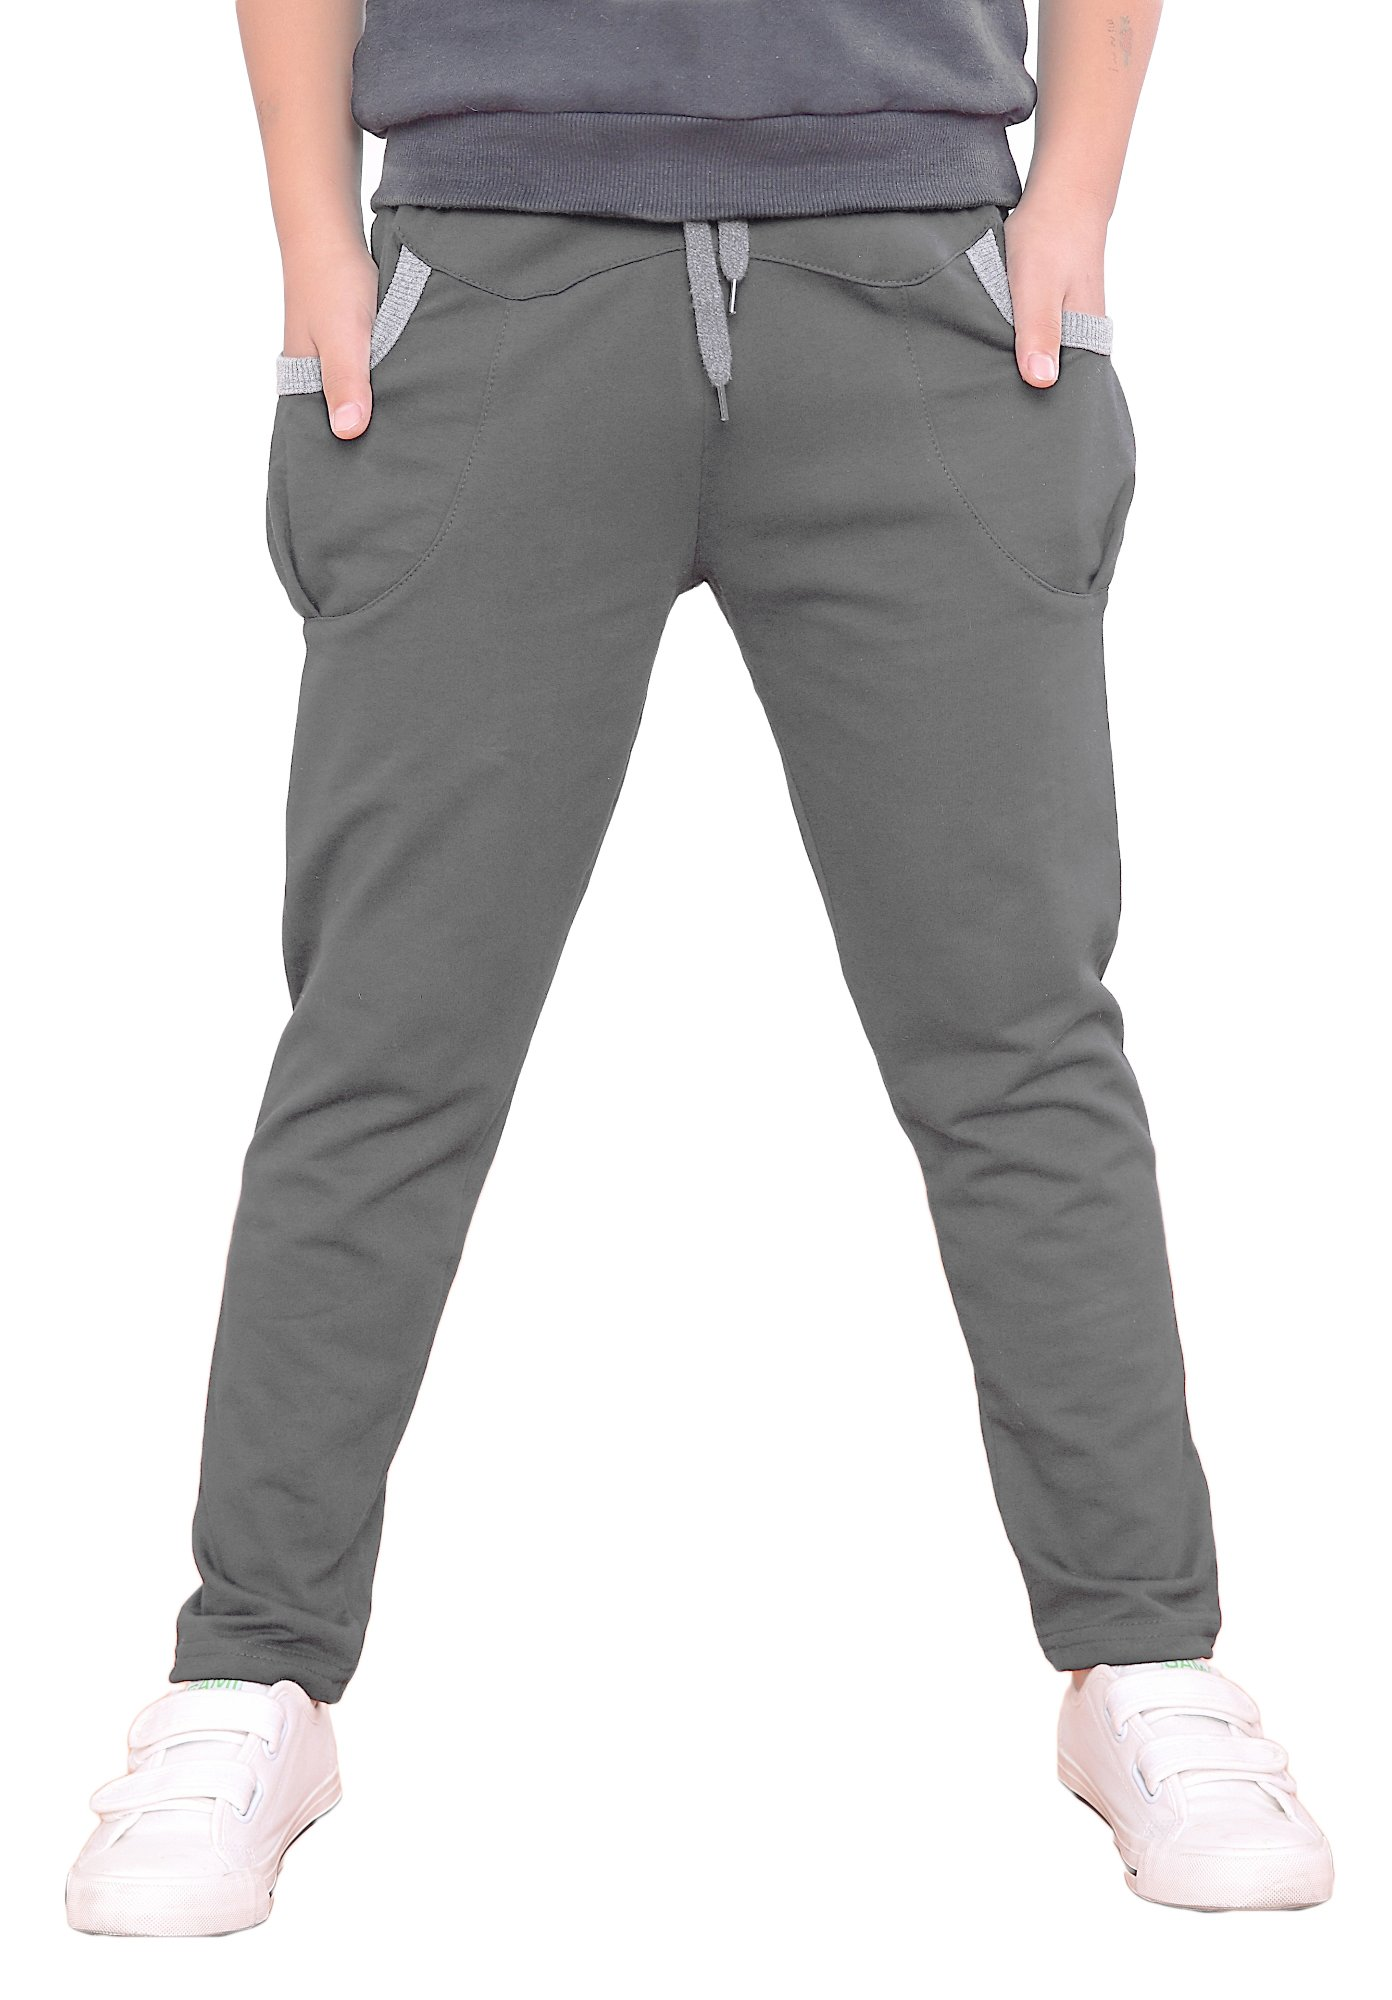 Dasnh Boy's Kids Cotton Slim Fit Adjustable Waist Jogger Pants Trousers With Two Big Pockets,8,Grey A